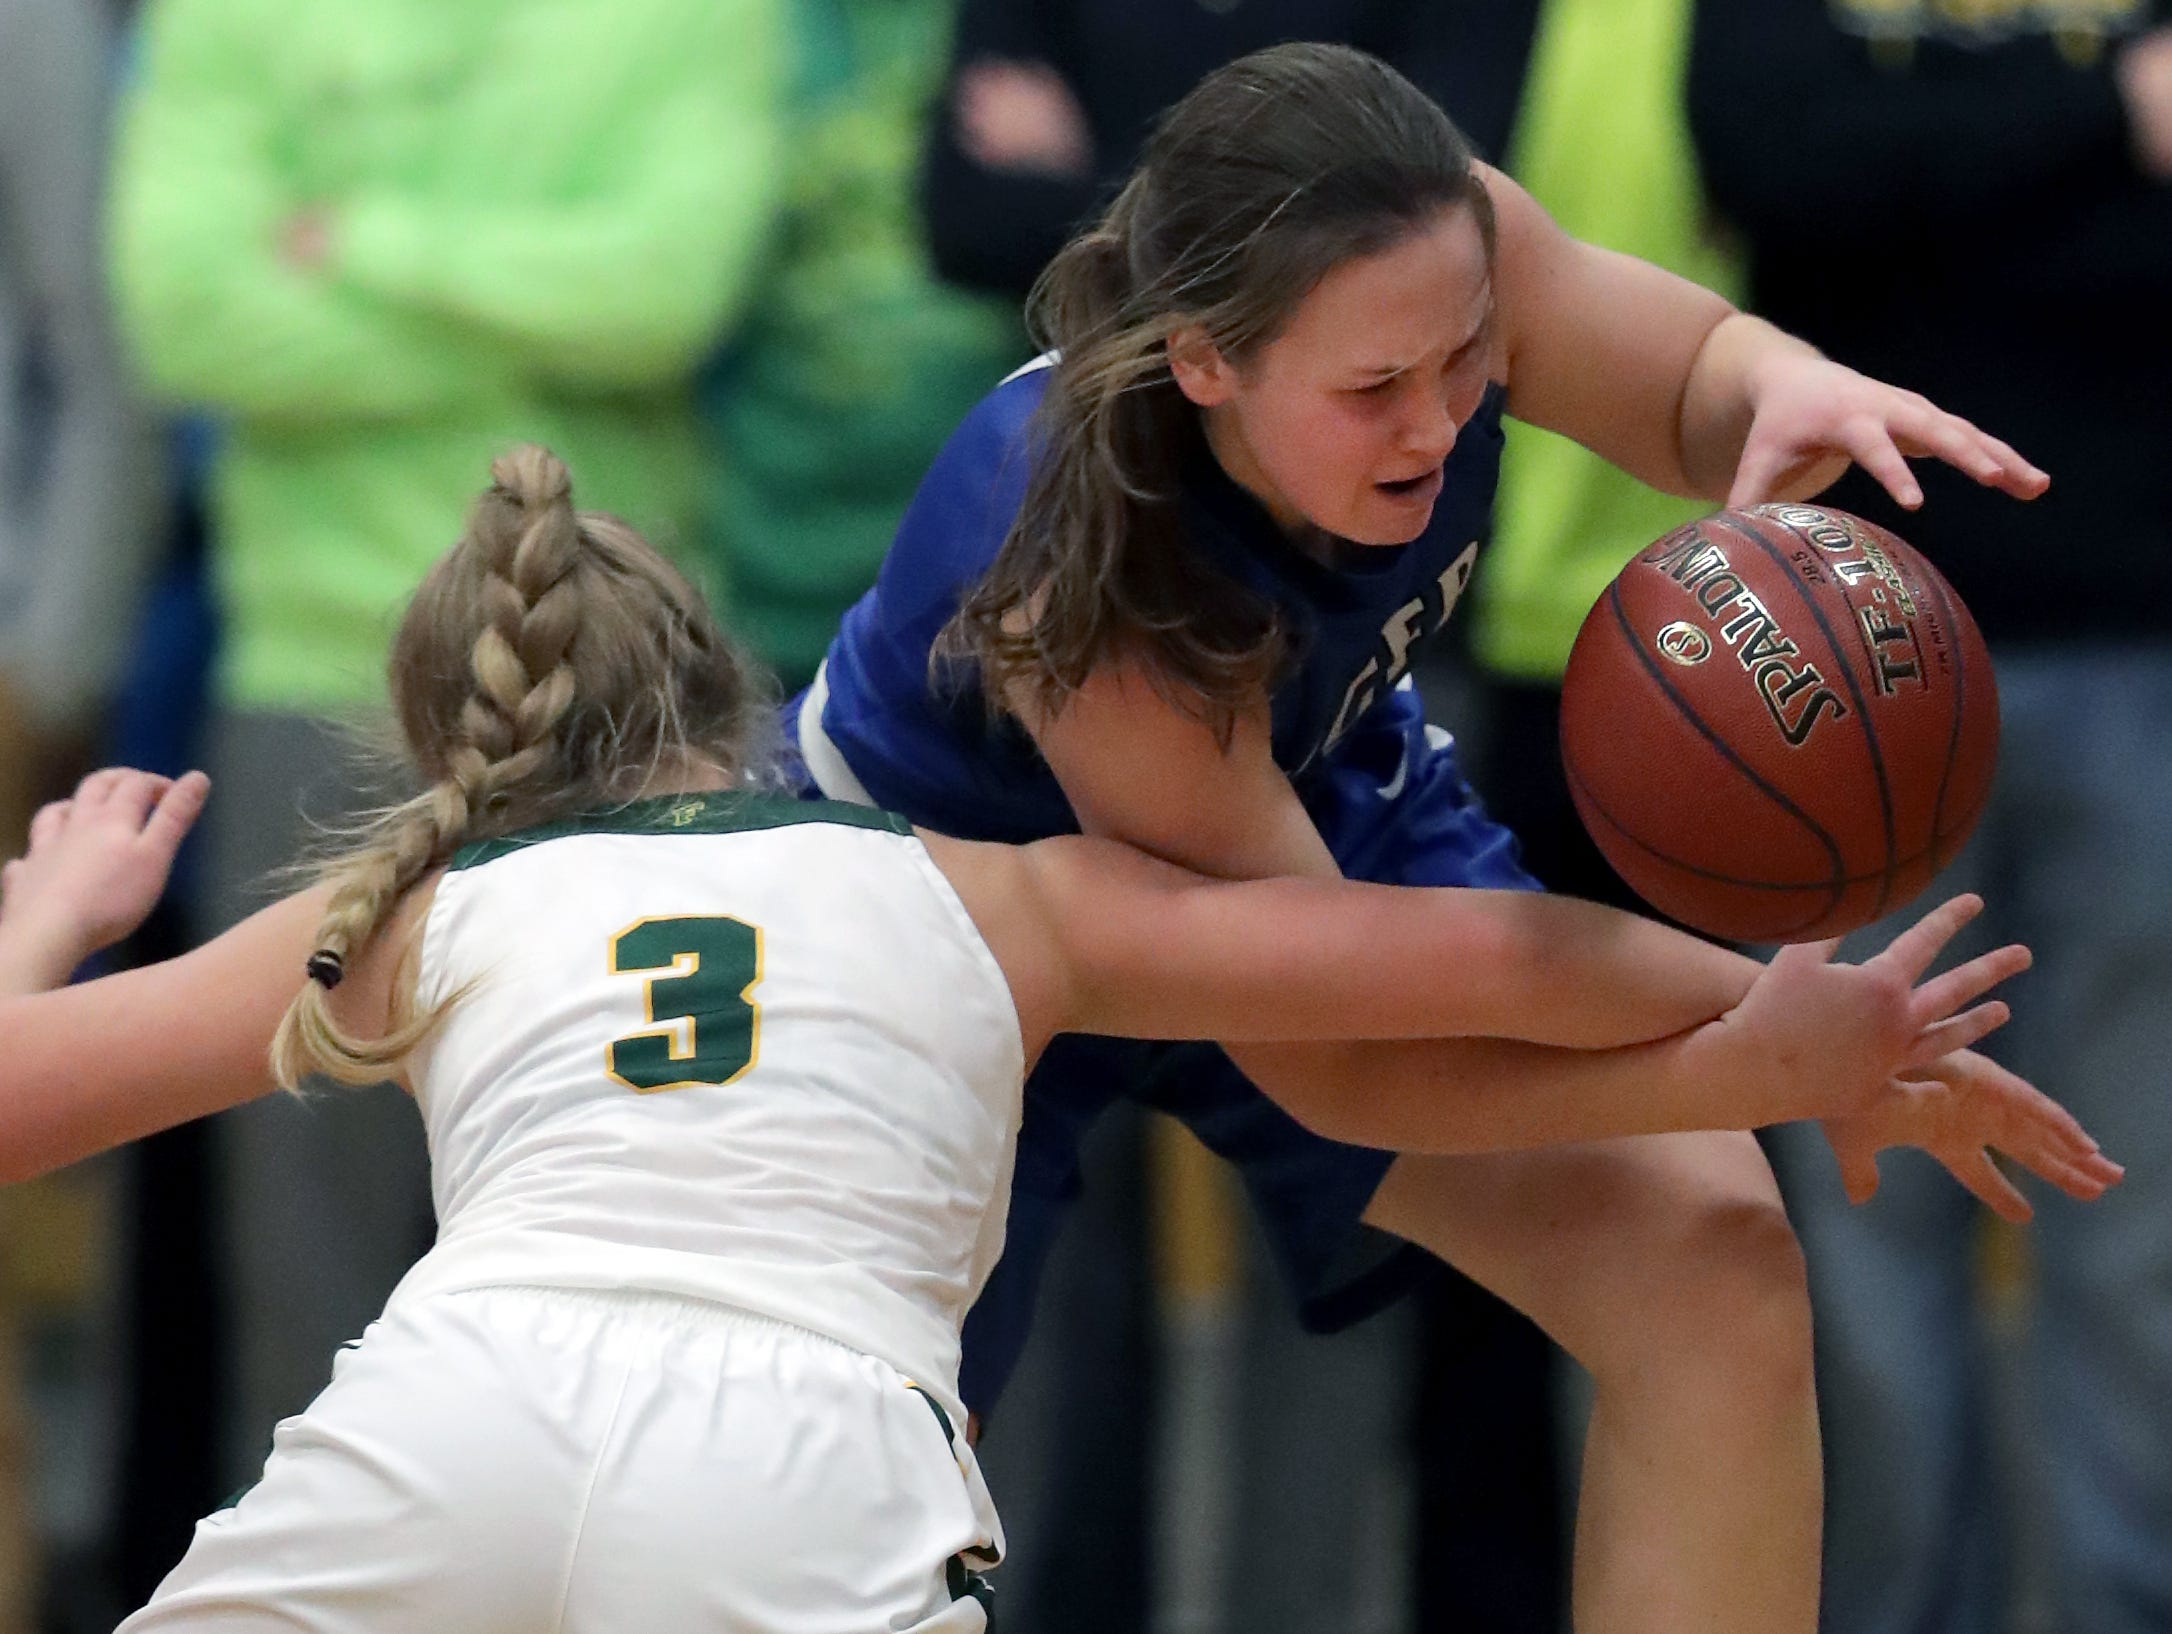 Wrightstown High School's #1 Bridget Froehlke against Freedom High School's #3 Kenidee Kroening during their North Eastern Conference girls basketball game on Thursday, January 3, 2019, in Freedom, Wis. Freedom defeated Wrightstown 54 to 34.Wm. Glasheen/USA TODAY NETWORK-Wisconsin.